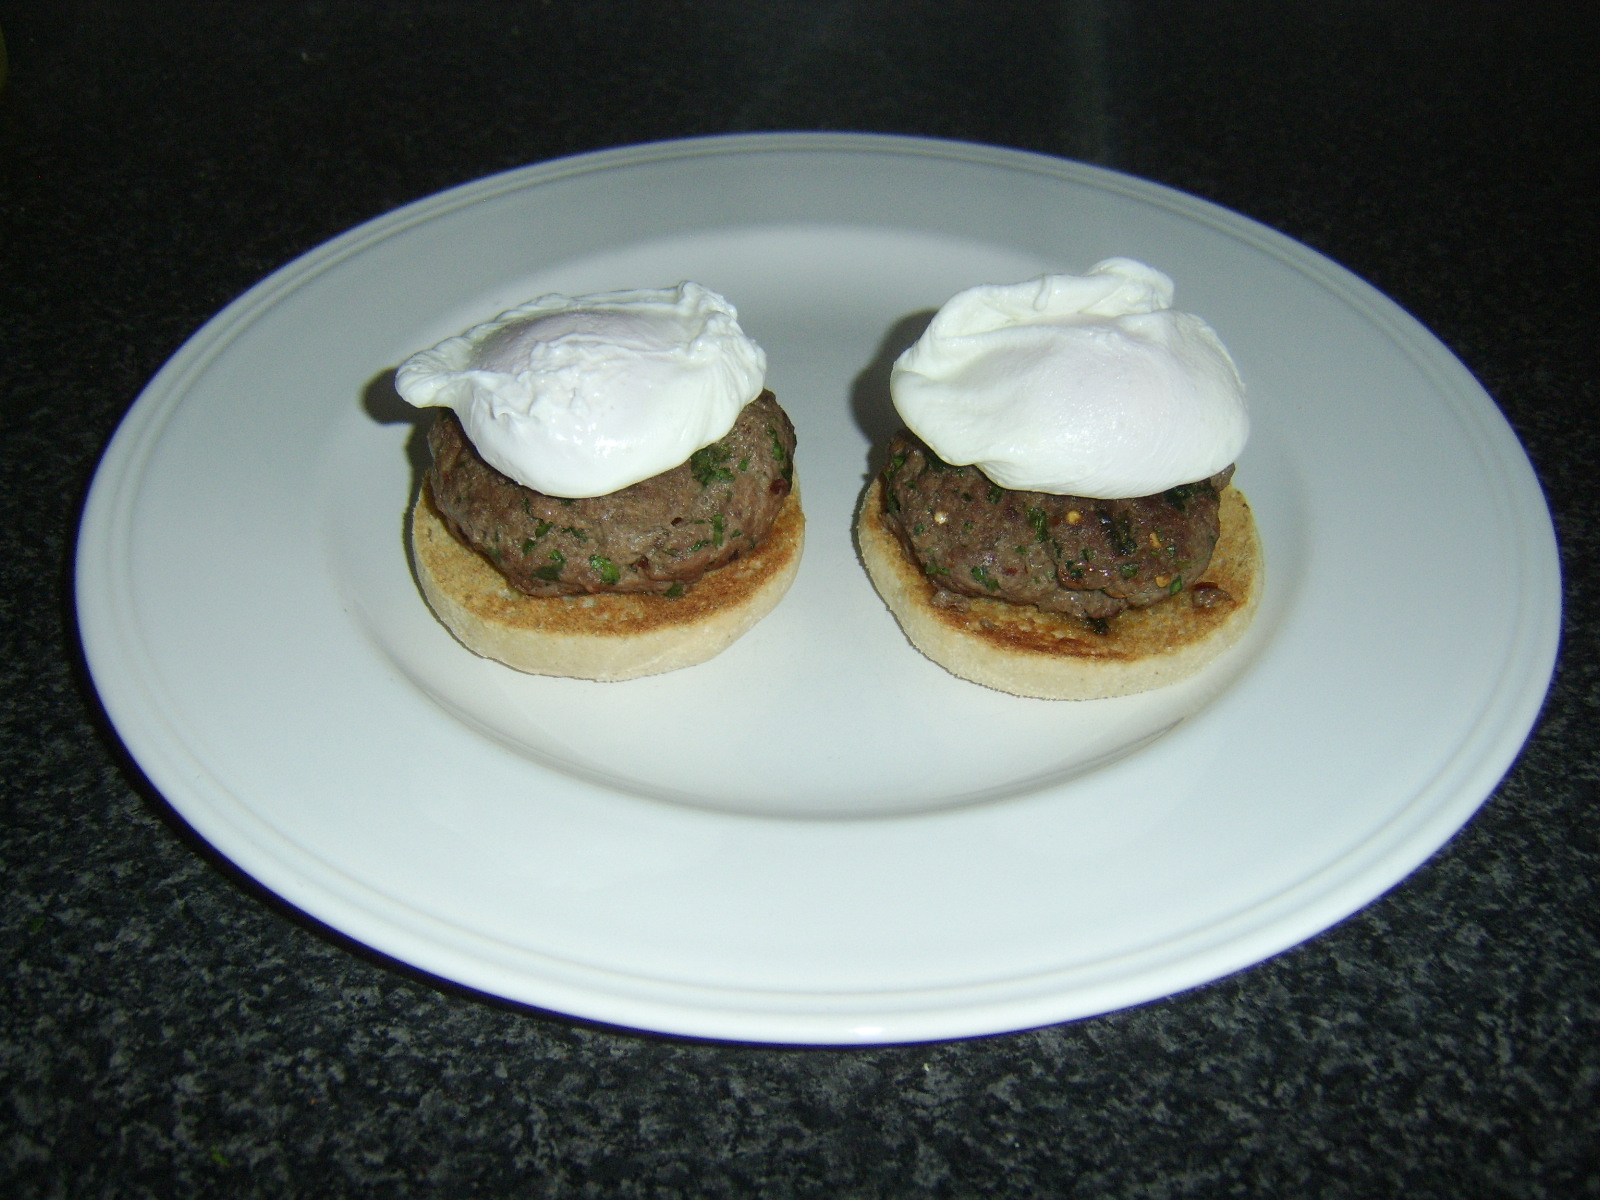 Spicy Burger and Poached Egg Muffins